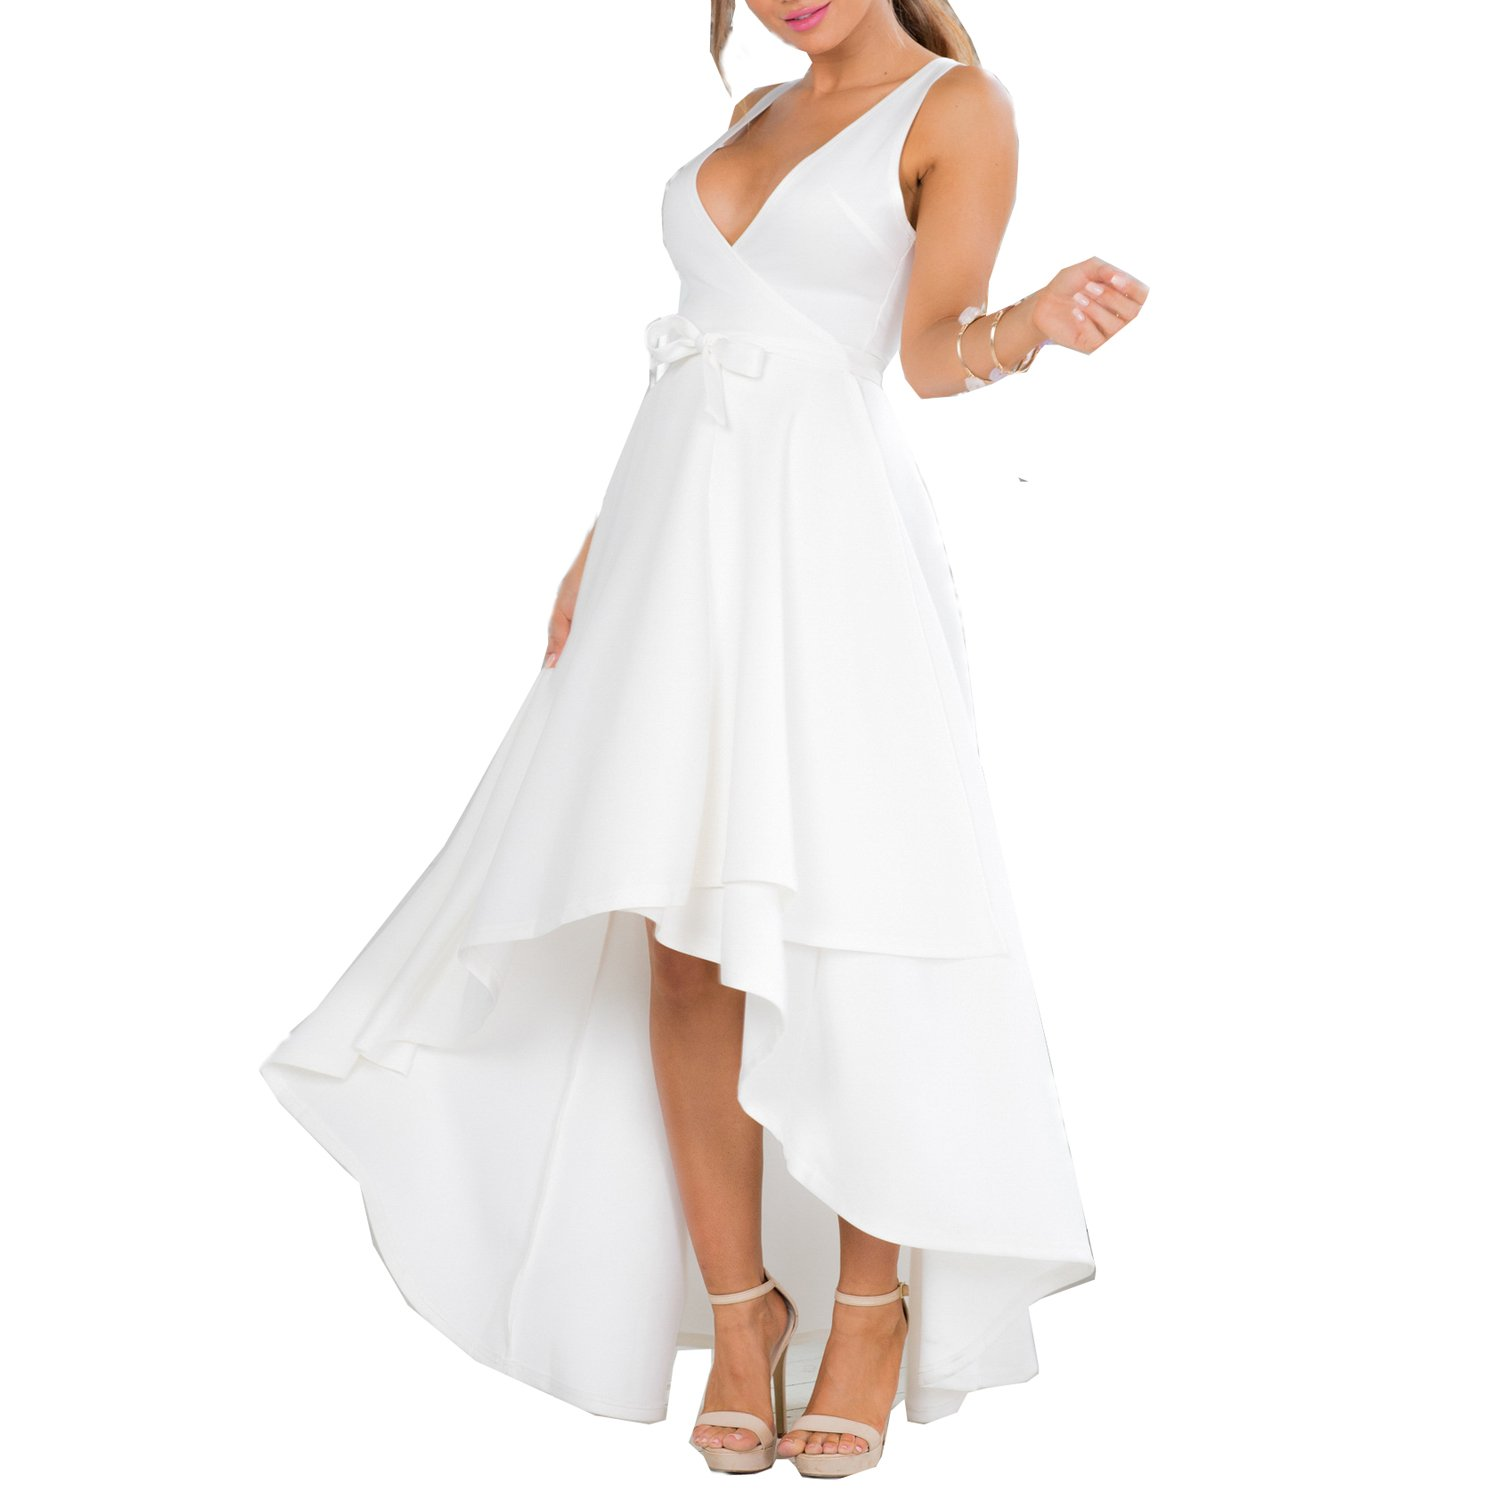 Images Of White Party Outfits In Fashion Outlet Review